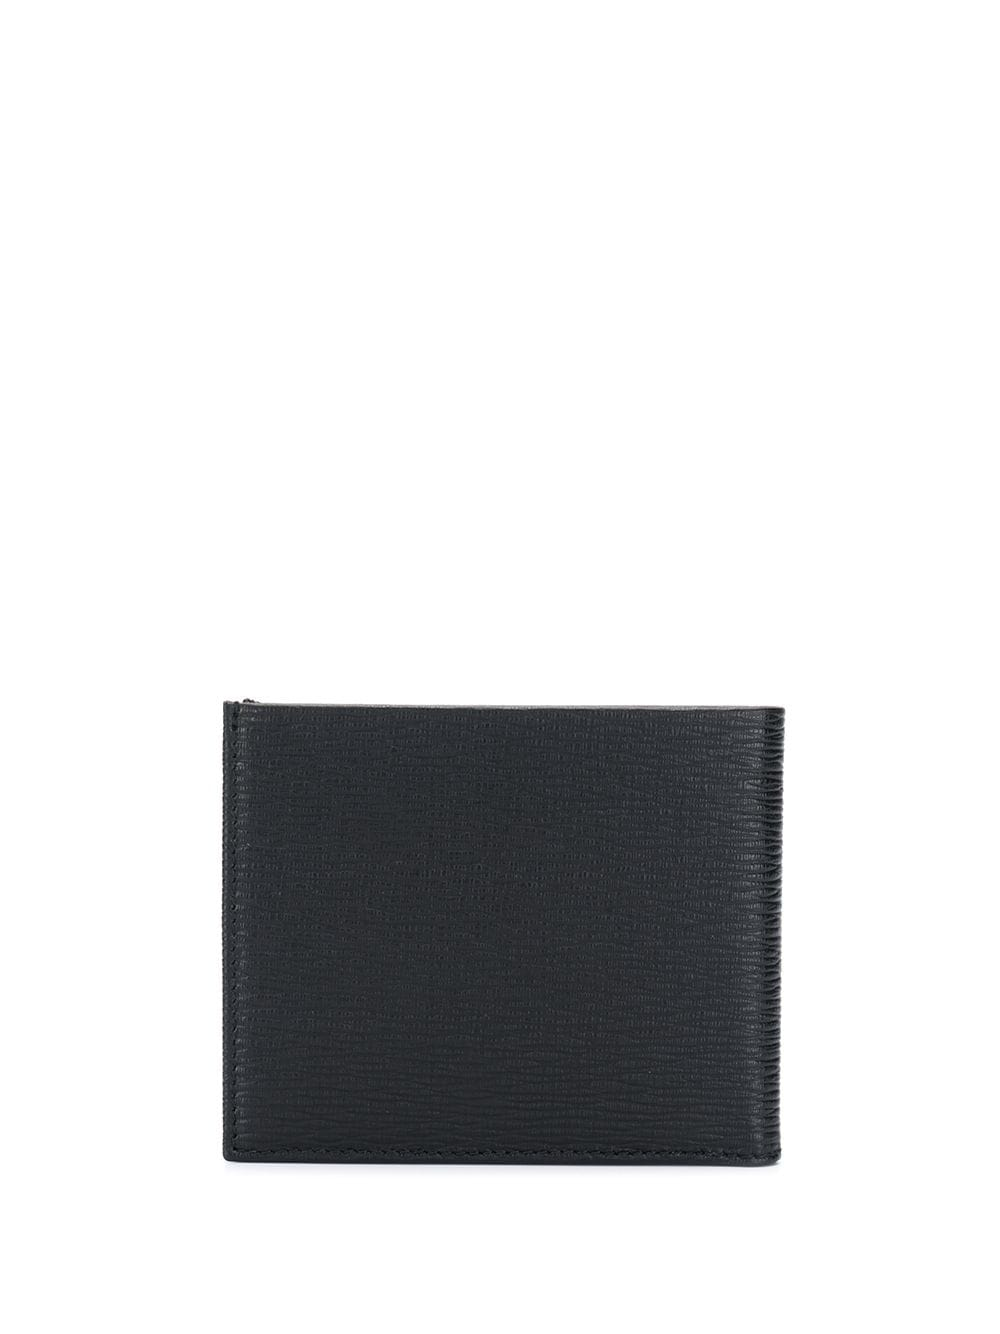 SALVATORE FERRAGAMO Grained Gancini Logo Wallet Black